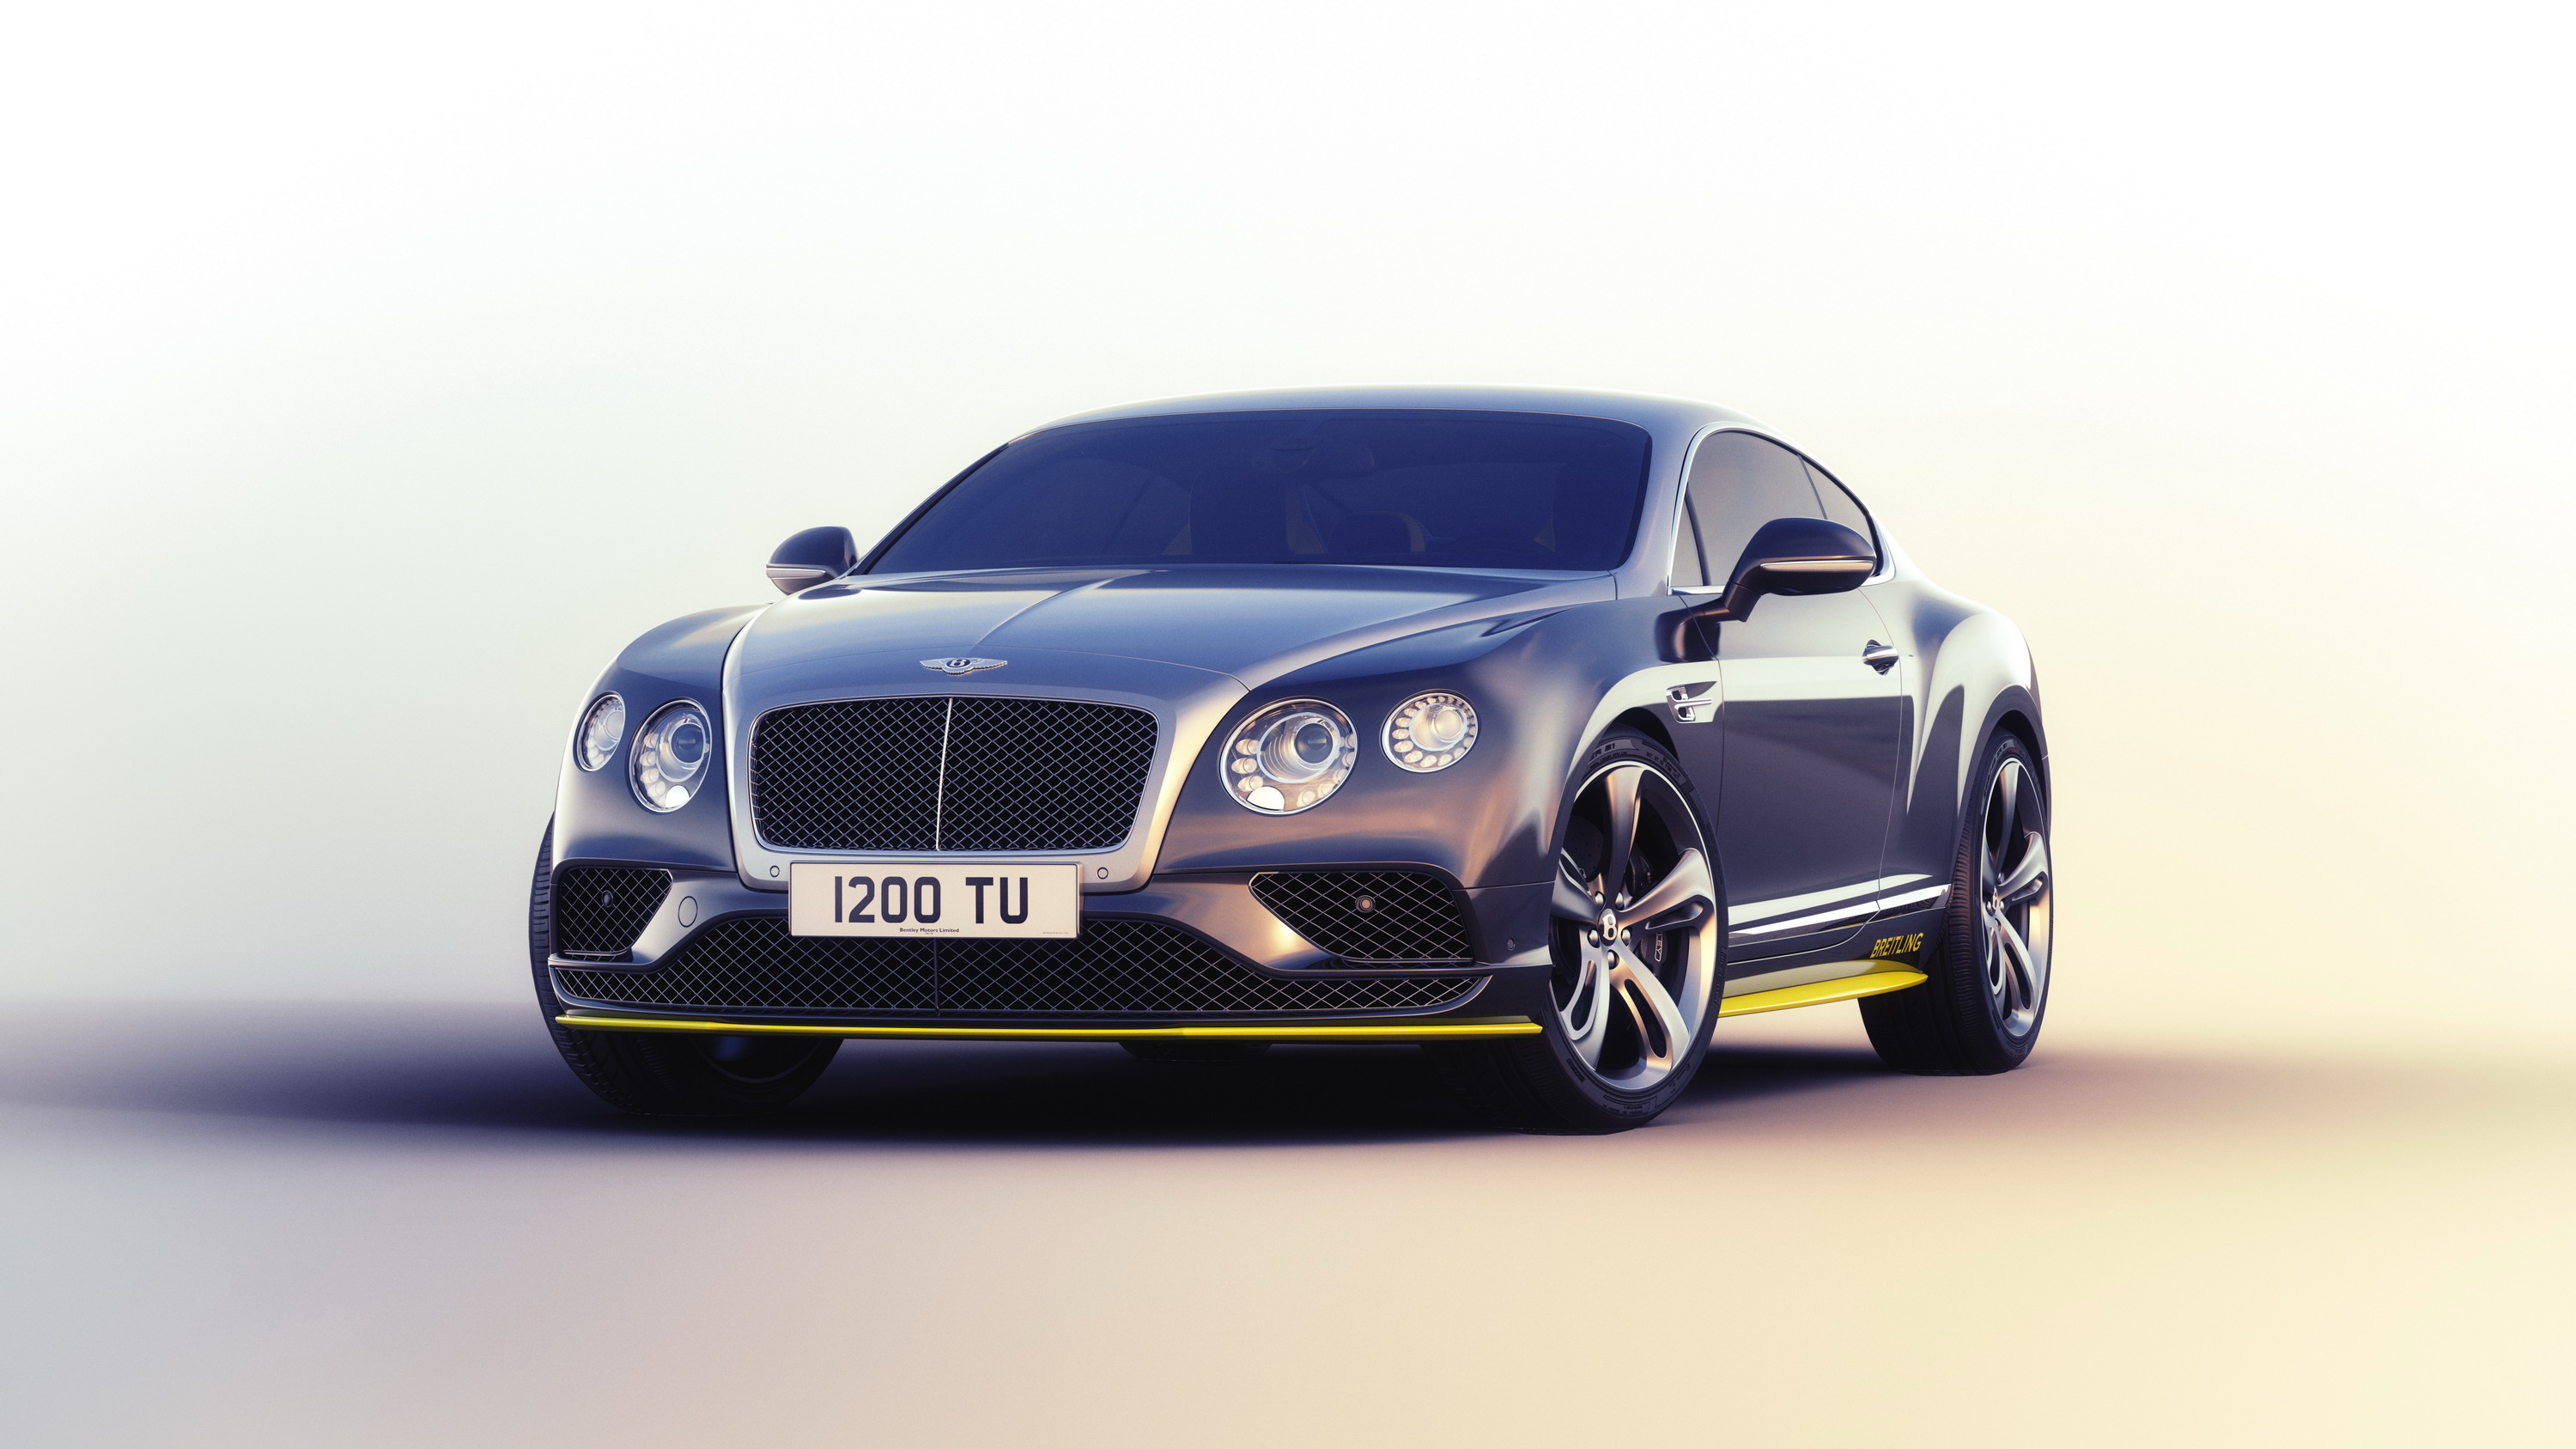 img reviews gear gtc review top cost bentley car average spur of flying continental a